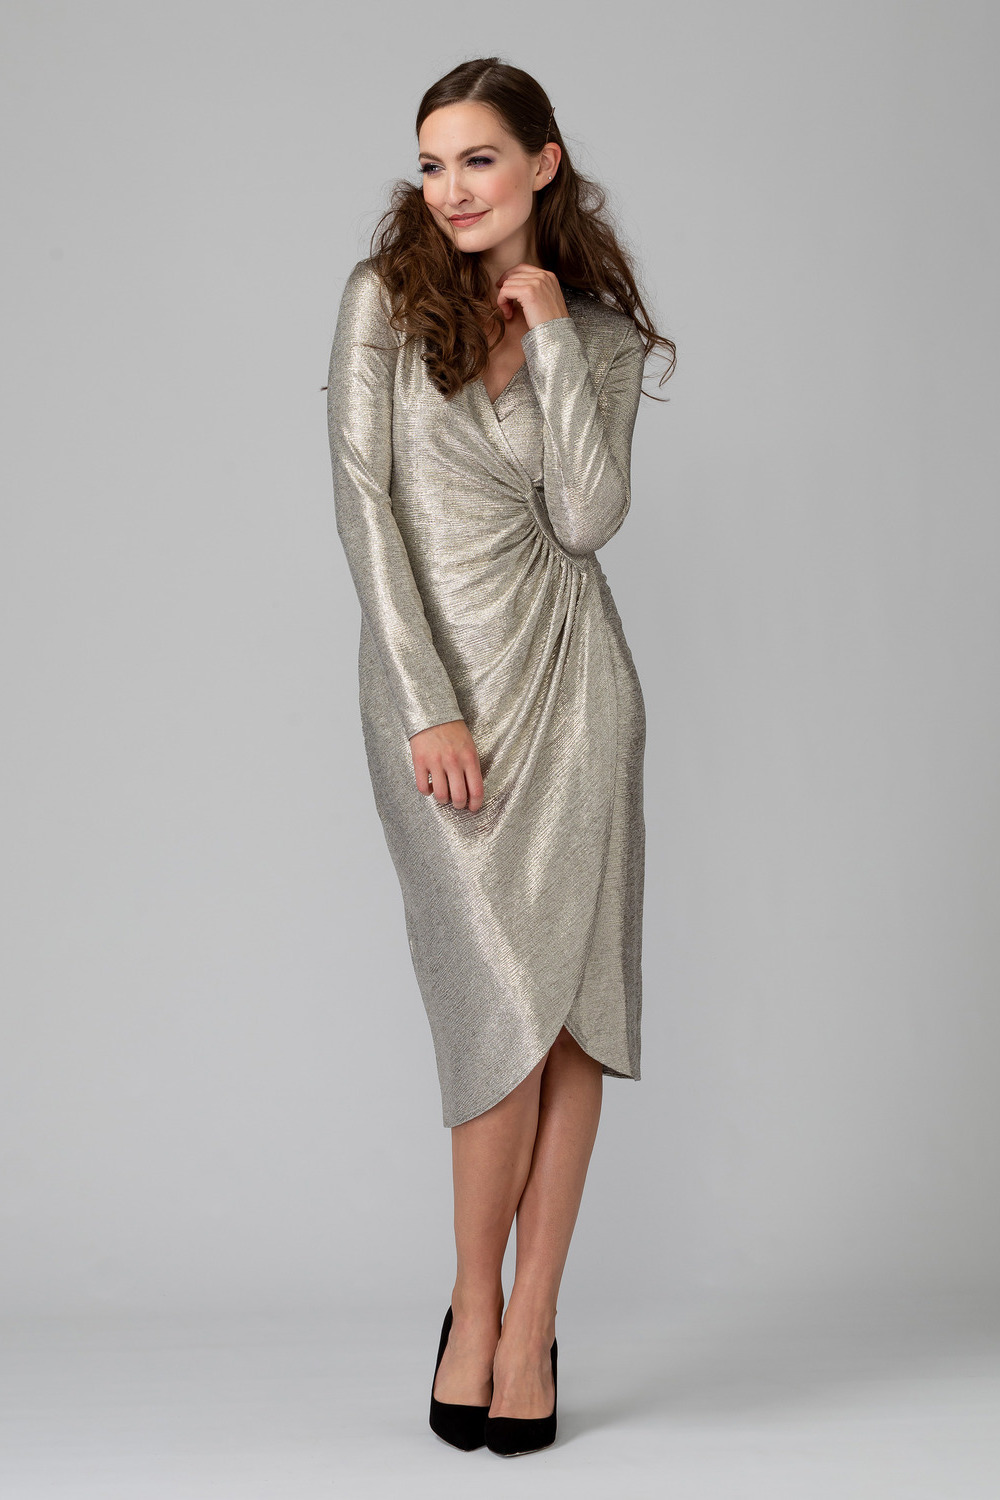 Joseph Ribkoff Robes Gris/Or Style 194550